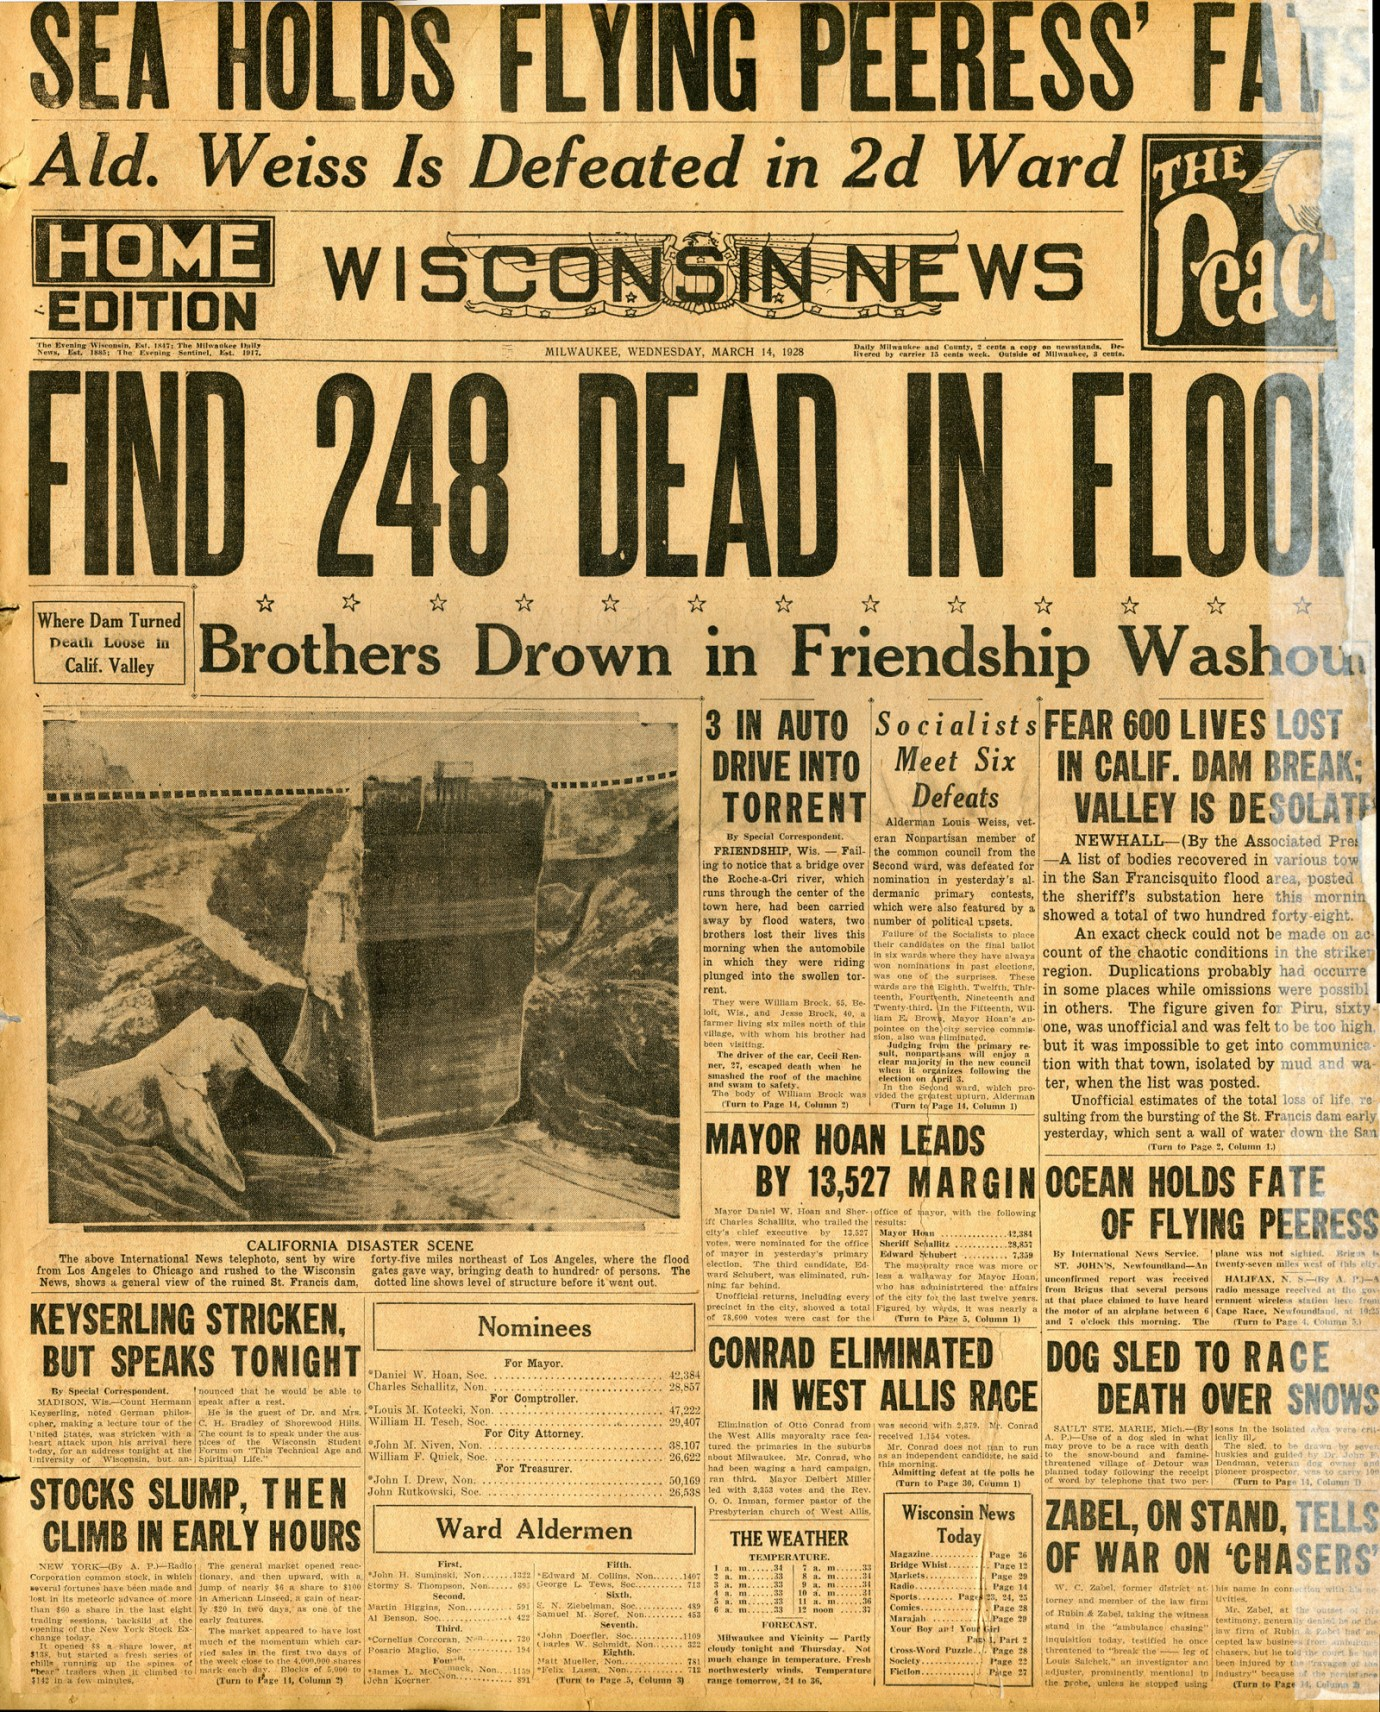 St. Francis Dam Disaster.  WISCONSIN NEWS (NEWSPAPER),  WEDNESDAY, MARCH 14, 1928